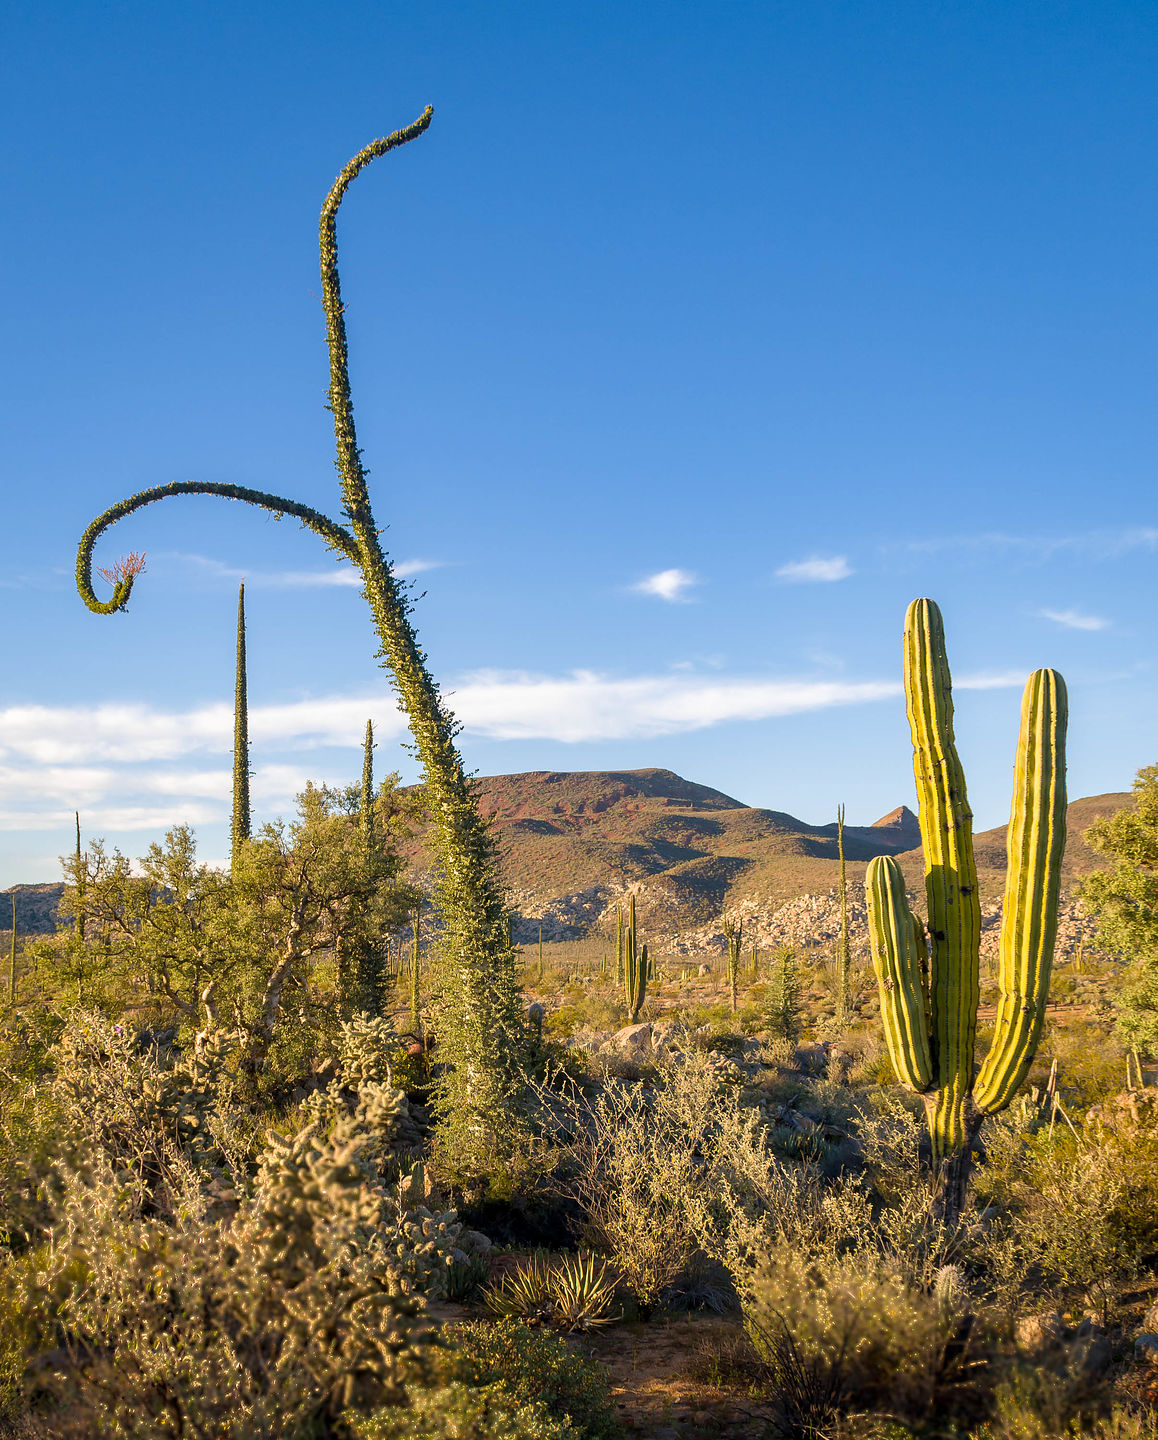 Cacti outside of Catavina